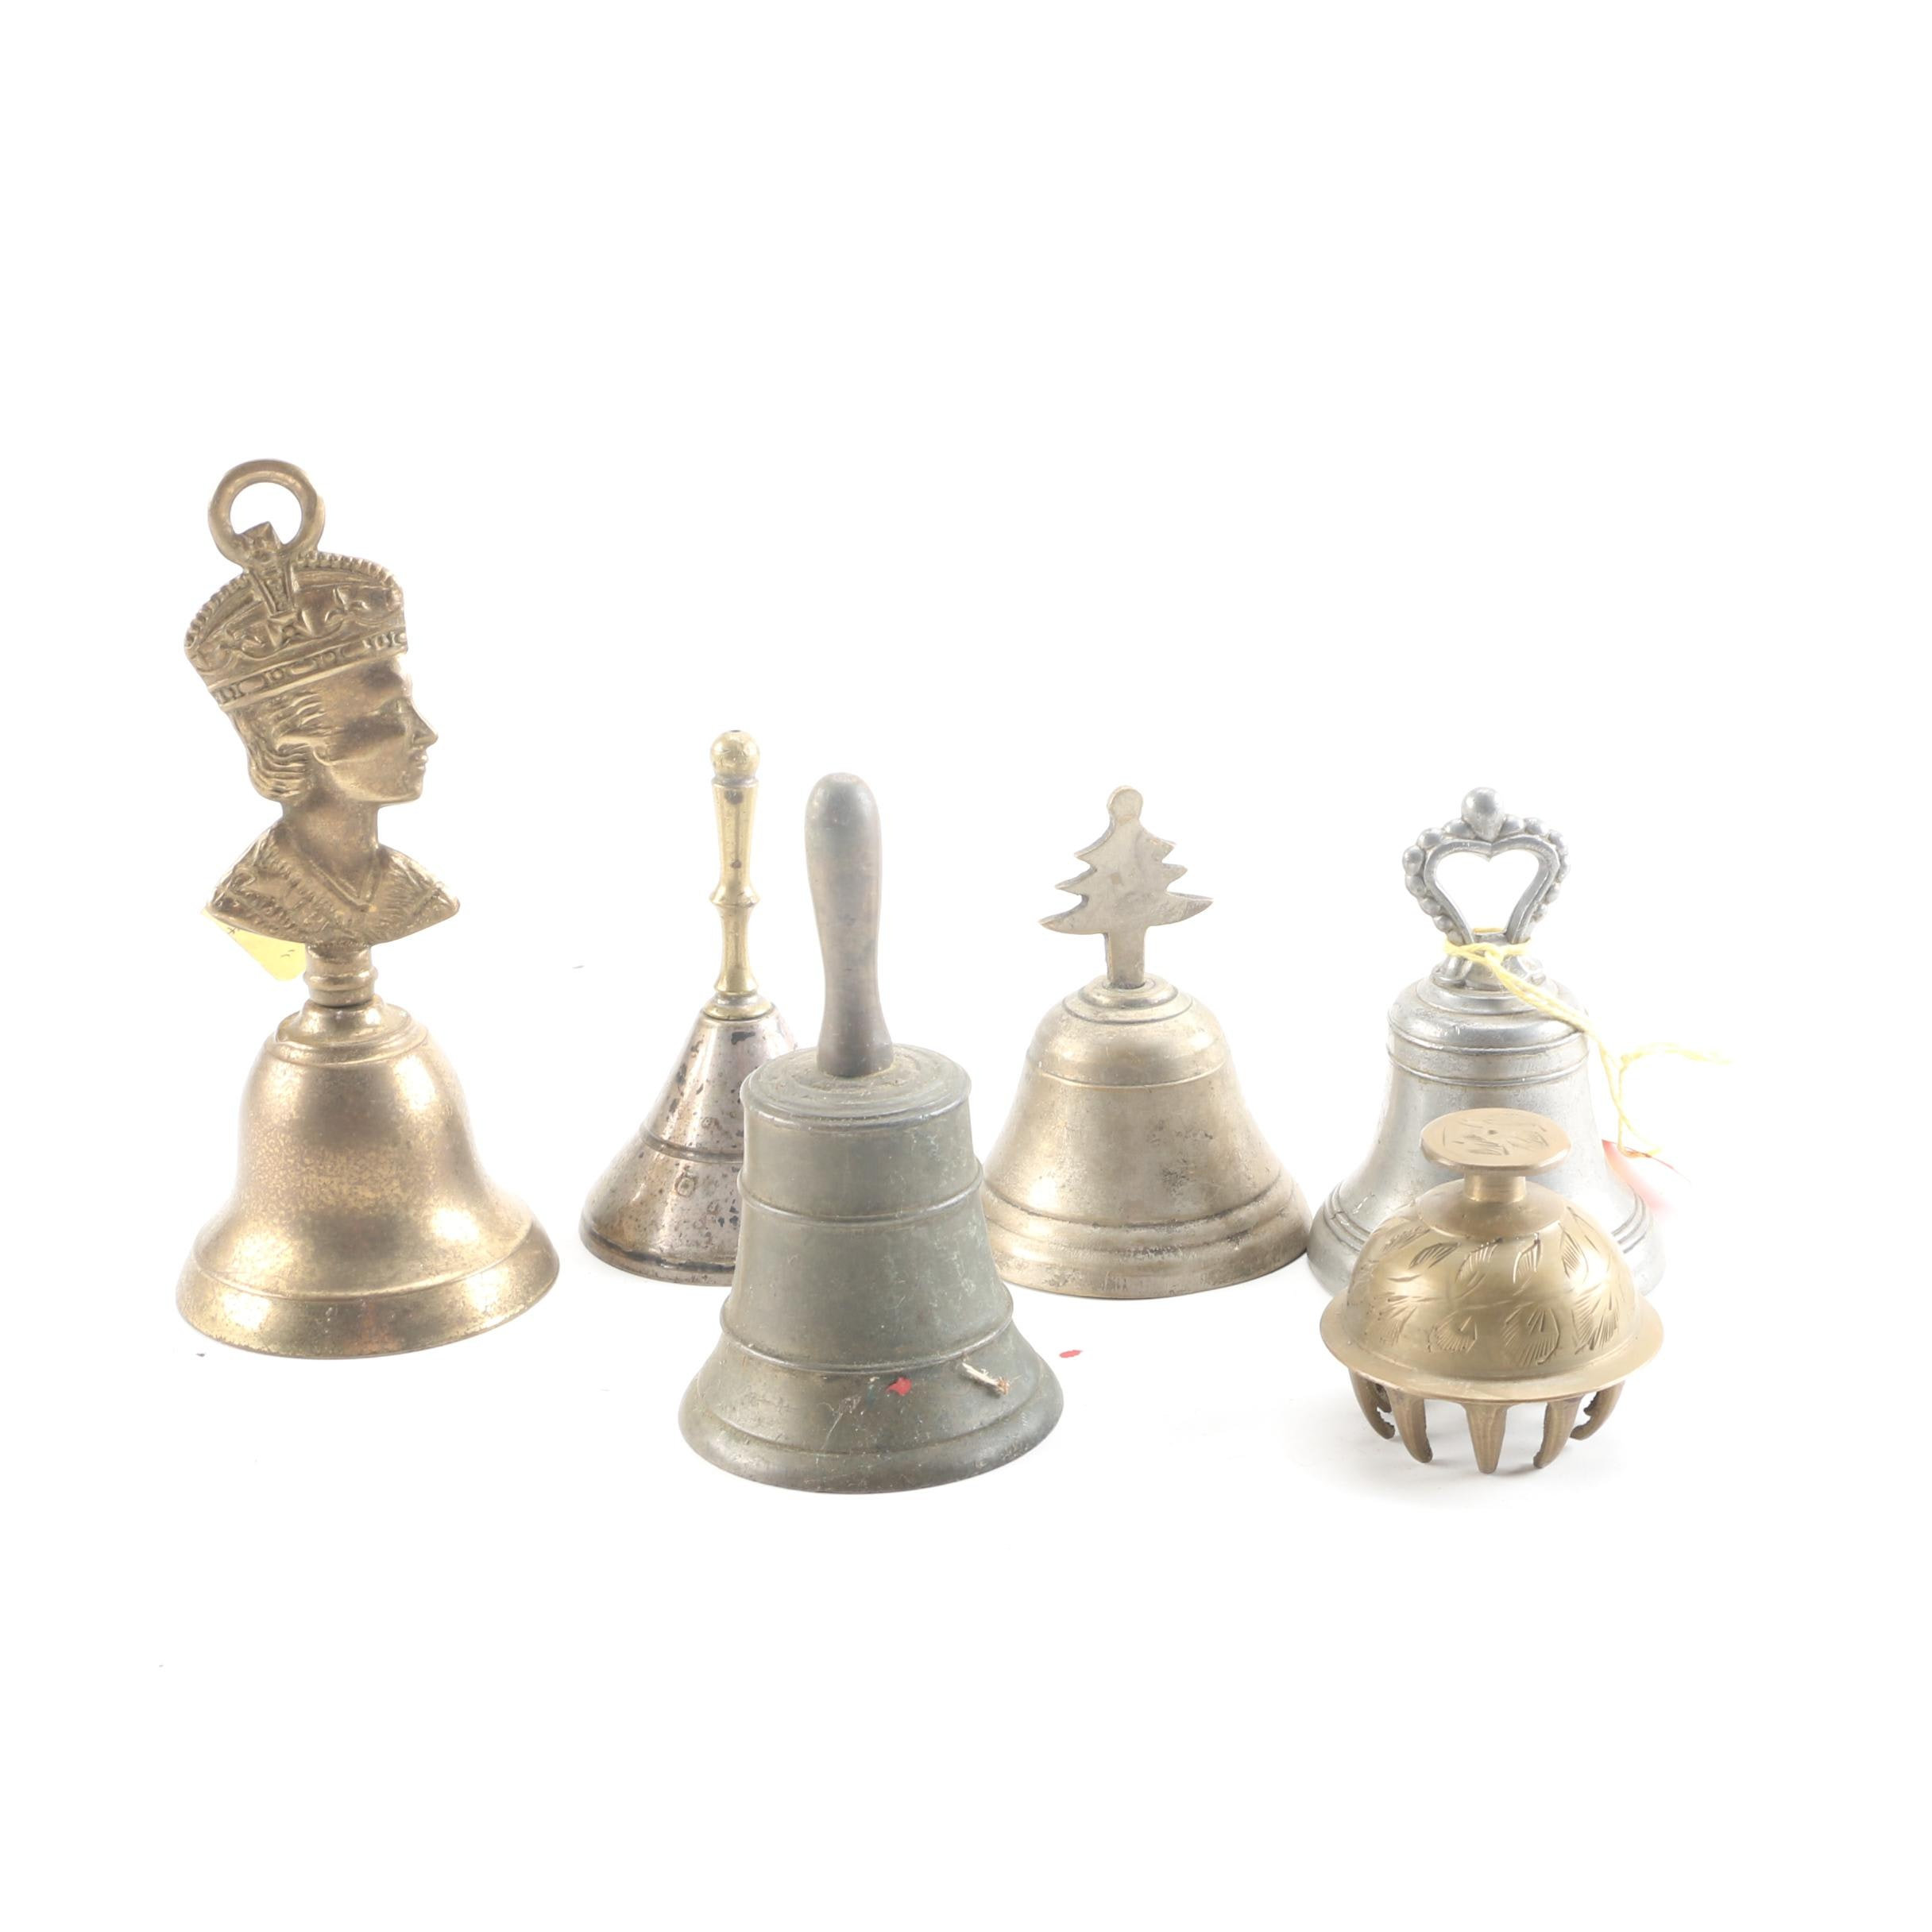 Brass Bells Including Queen Elizabeth Commemorative Coronation Bell